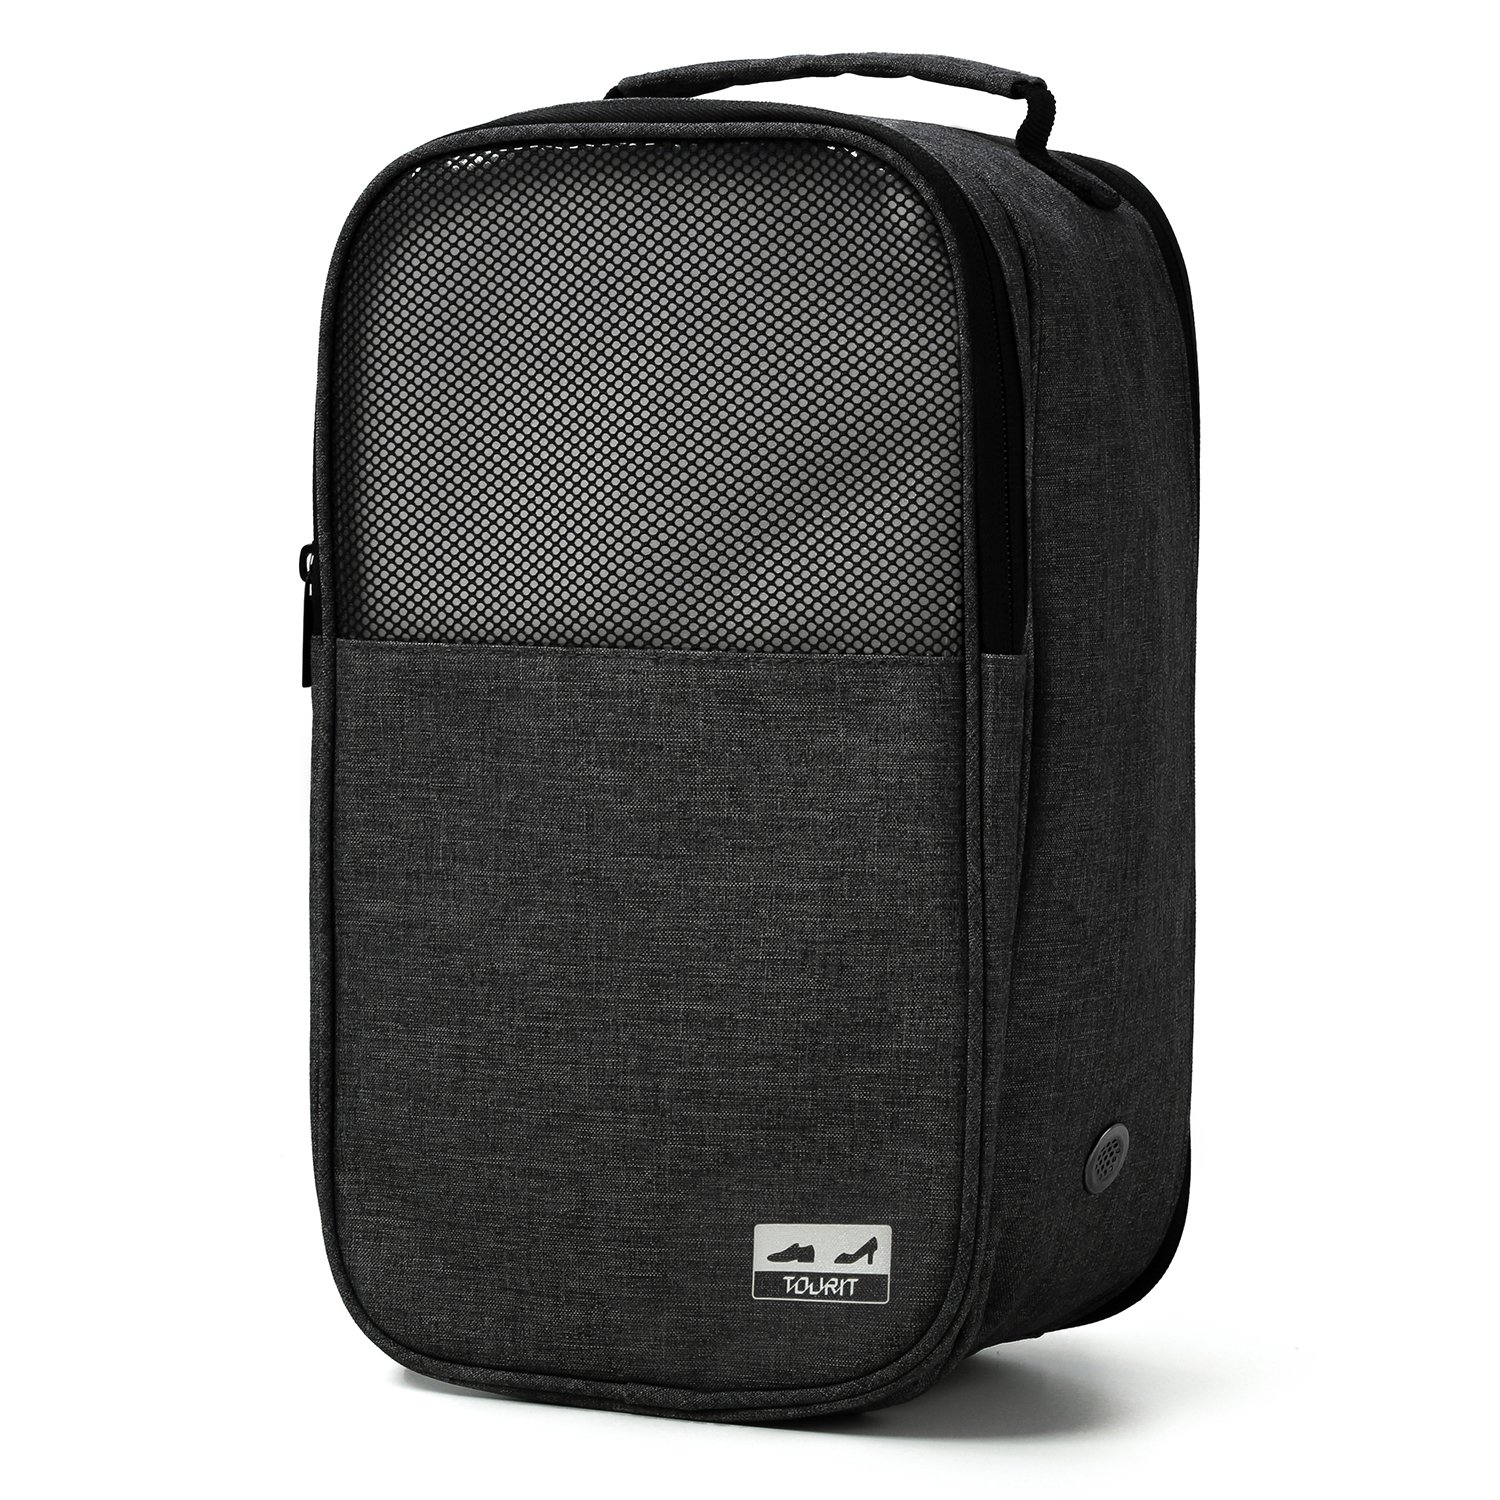 TOURIT Shoe Bag with Zipper Closure for Traveling Gym Business Black TO0200083A001-FUS